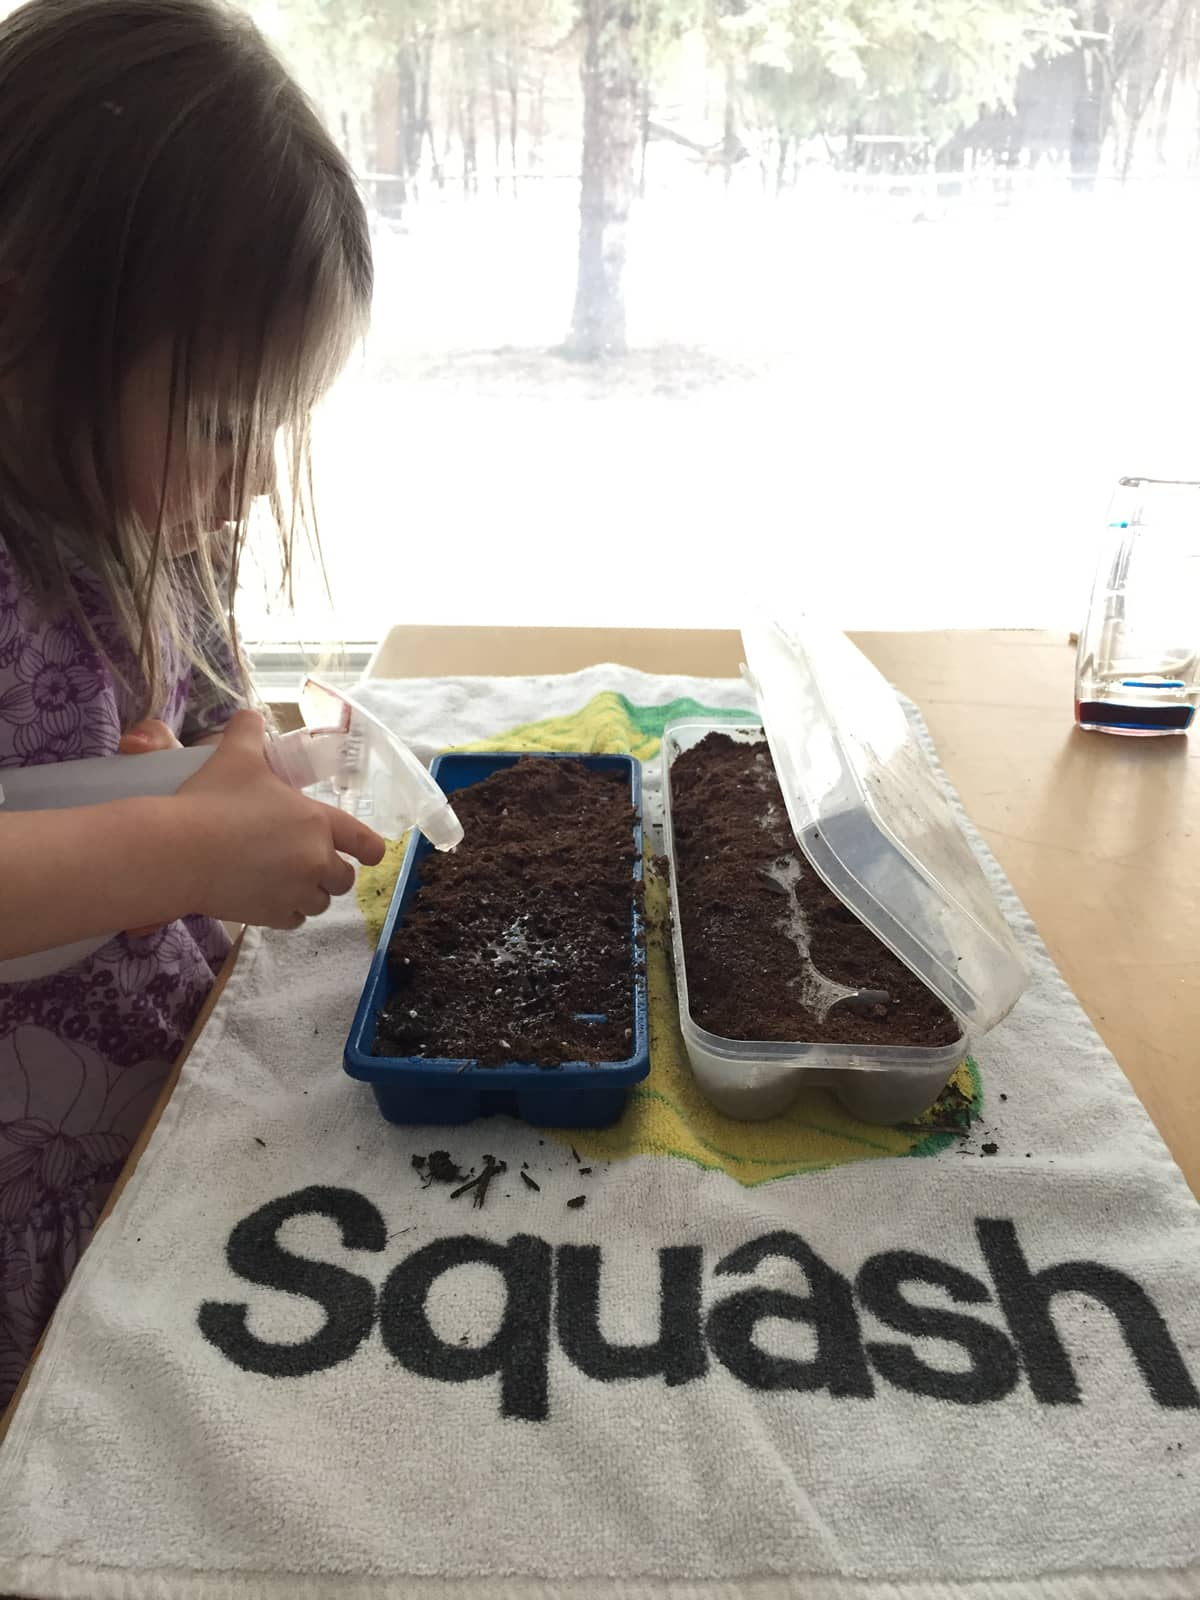 Preschooler starting seeds indoors during the winter.